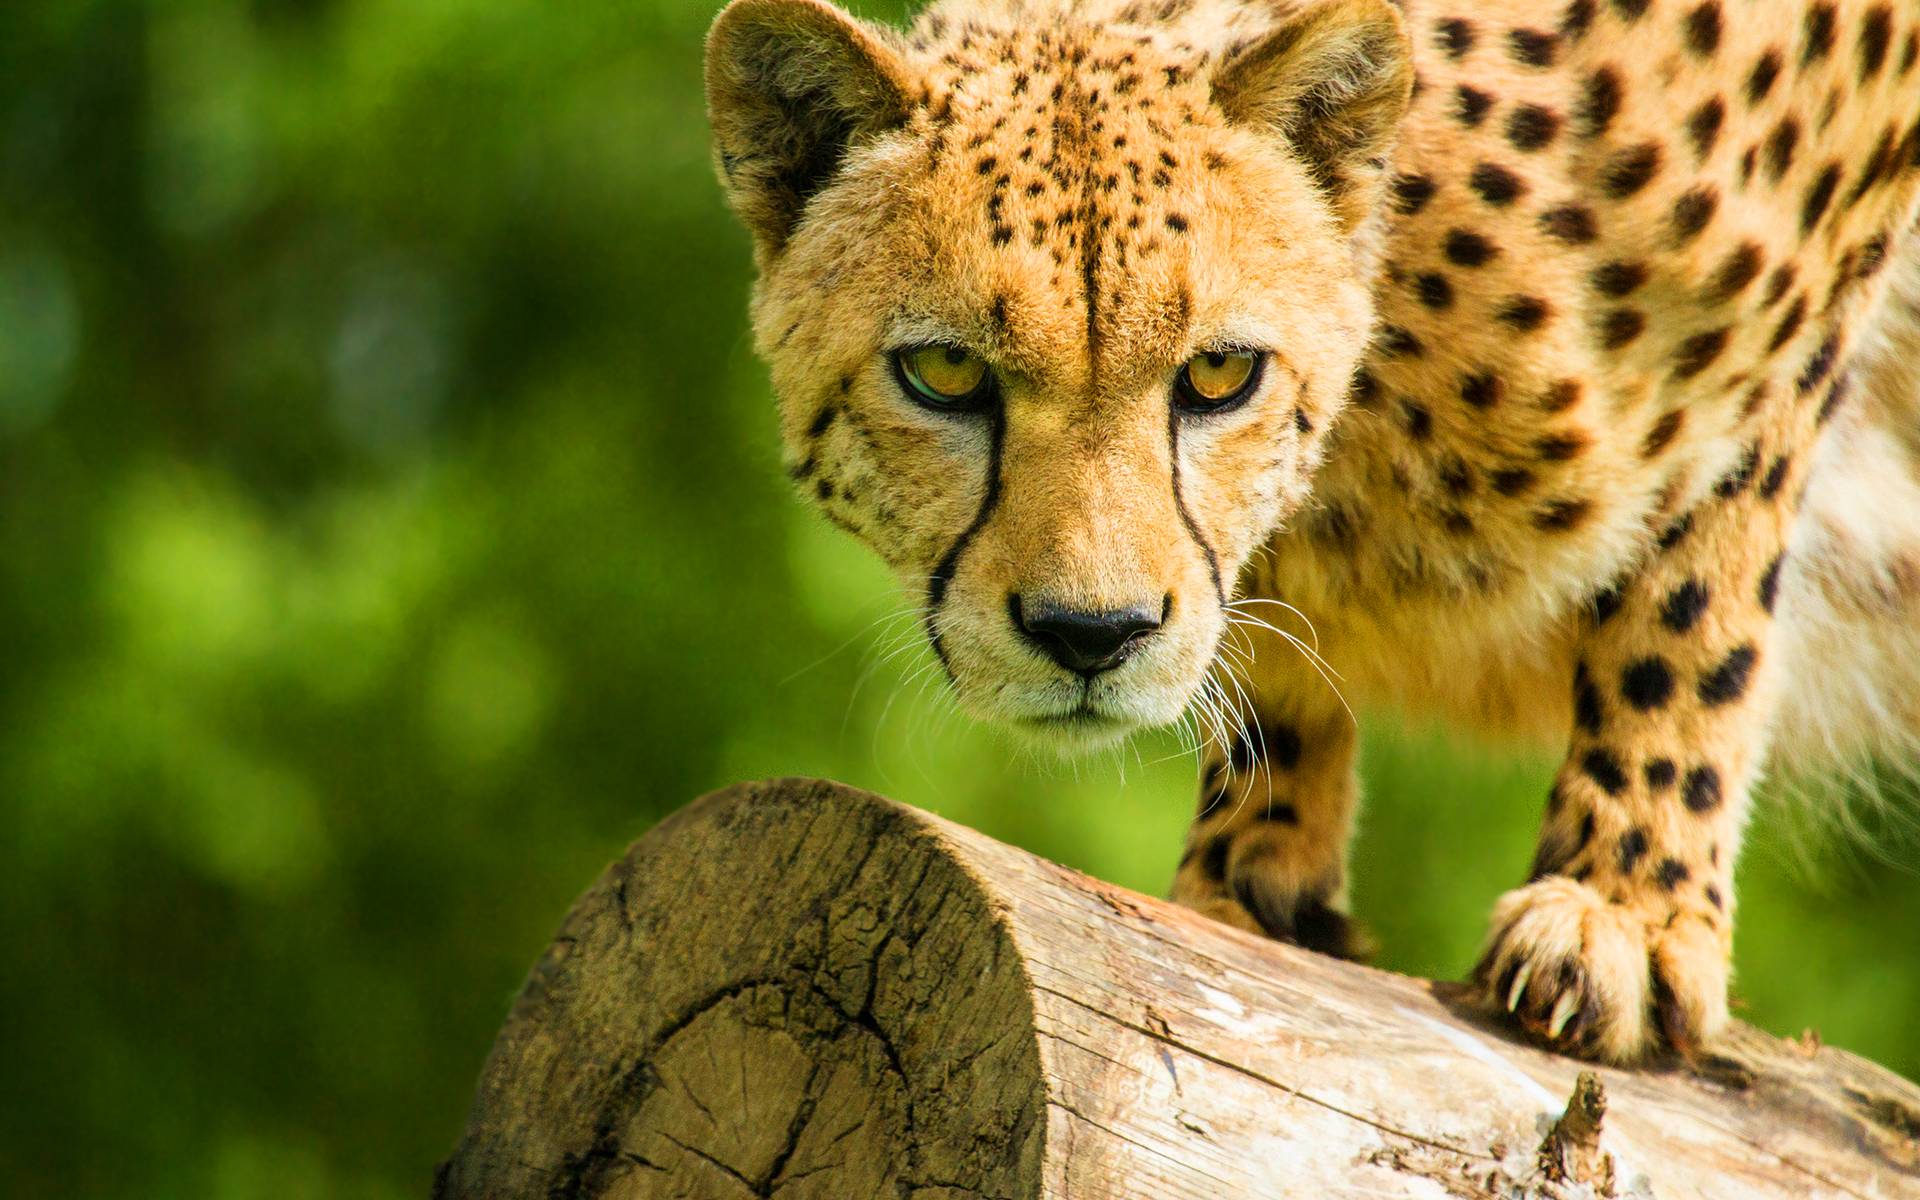 Cheetah Wild Cat Hd Desktop Wallpapers 4k Hd HD Wallpapers Download free images and photos [musssic.tk]